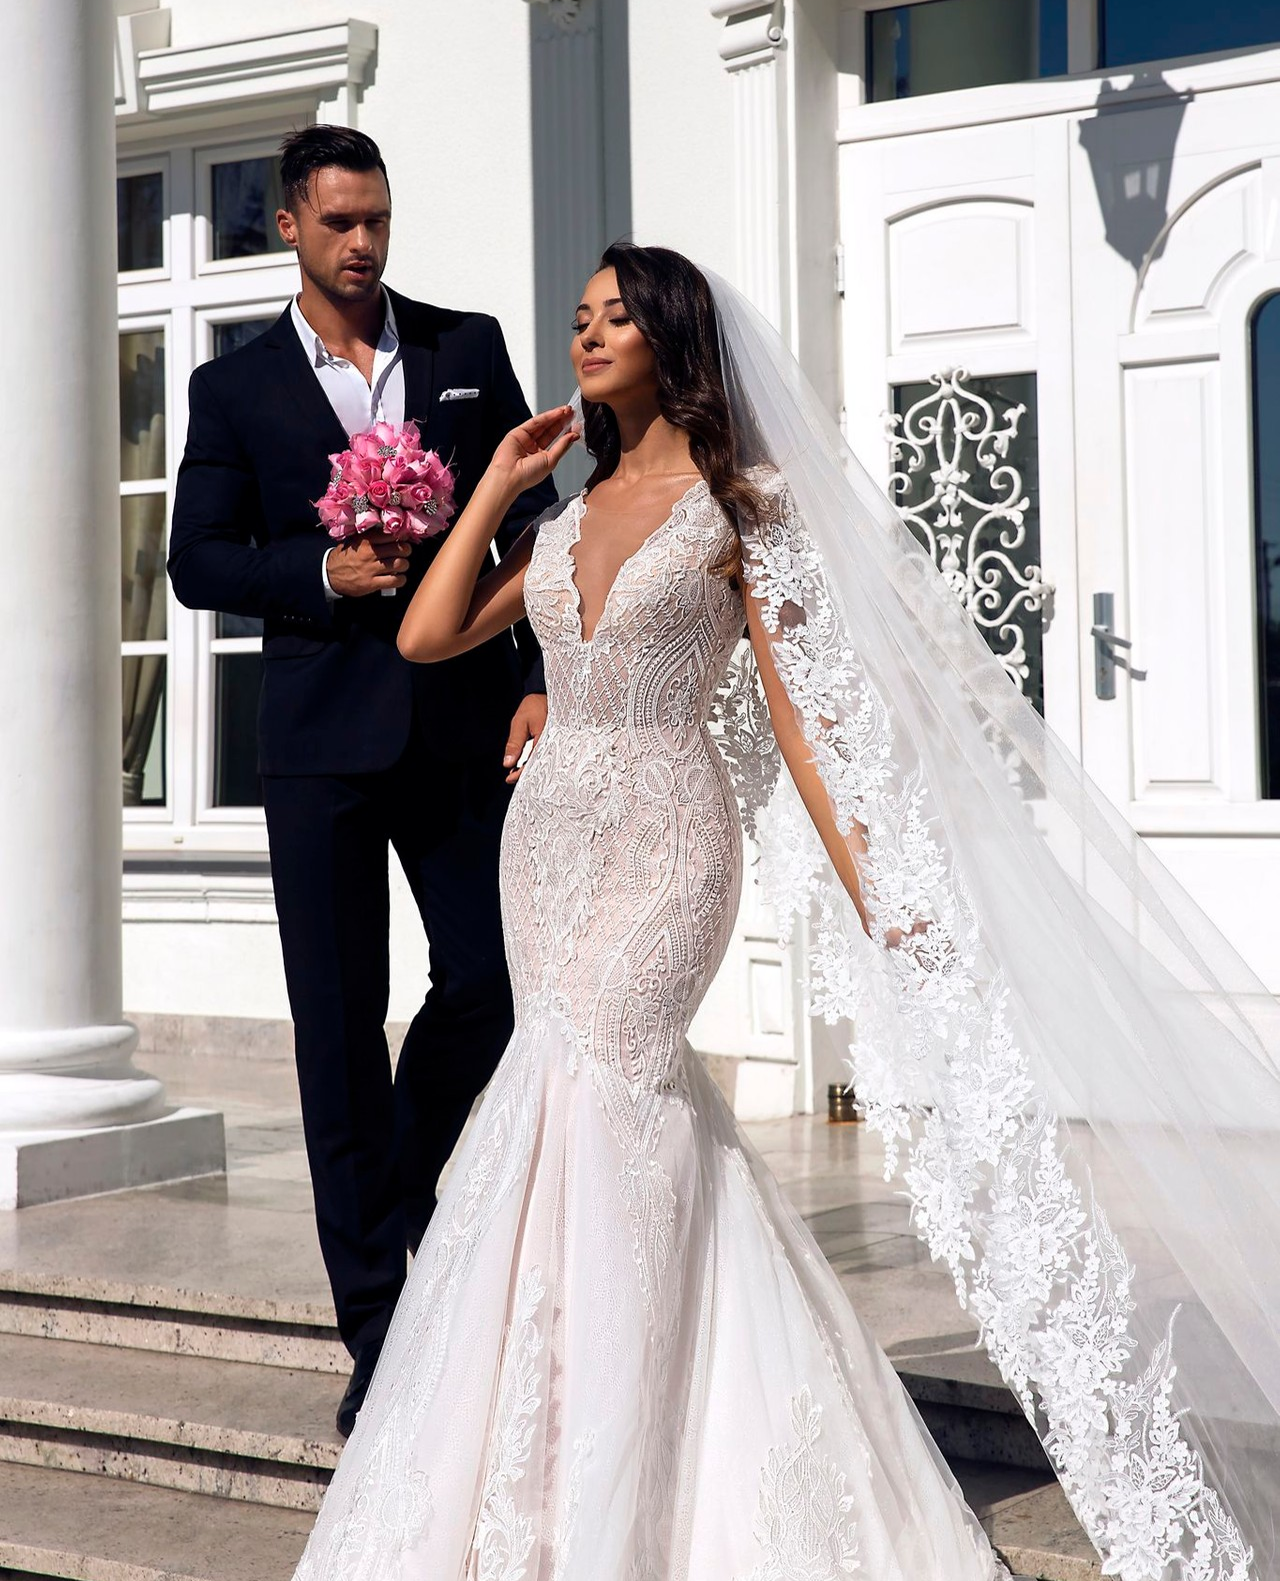 Come And Visit Us In The Amazing Bridal Suite At The Historic Stan Mansion Stan Mansion Wed Wedding Dress Store European Wedding Dresses Best Wedding Dresses